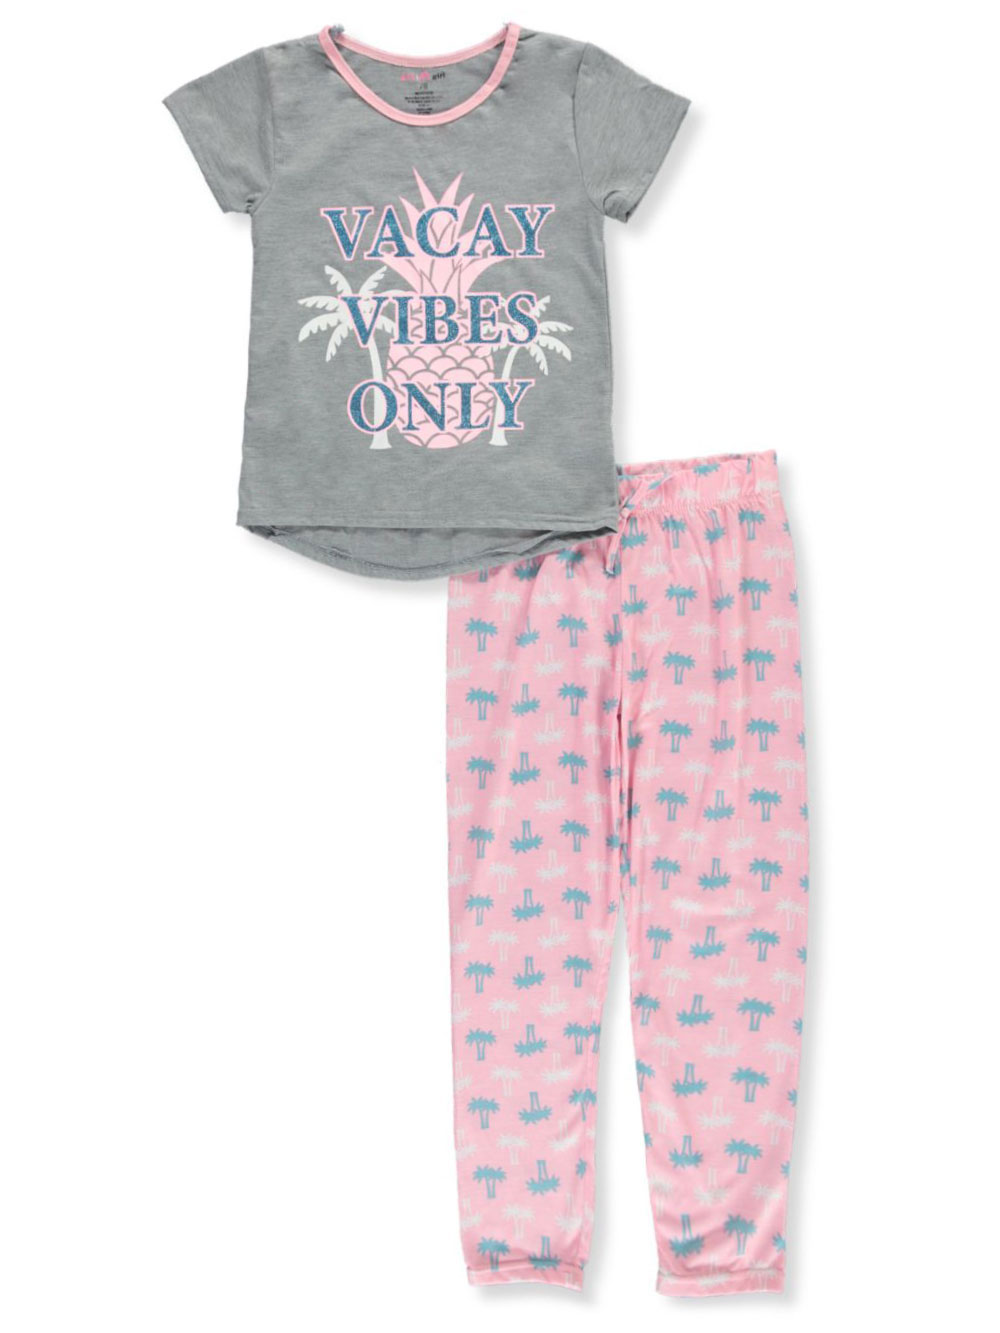 Vacay Vibes Only 2-Piece Pajamas